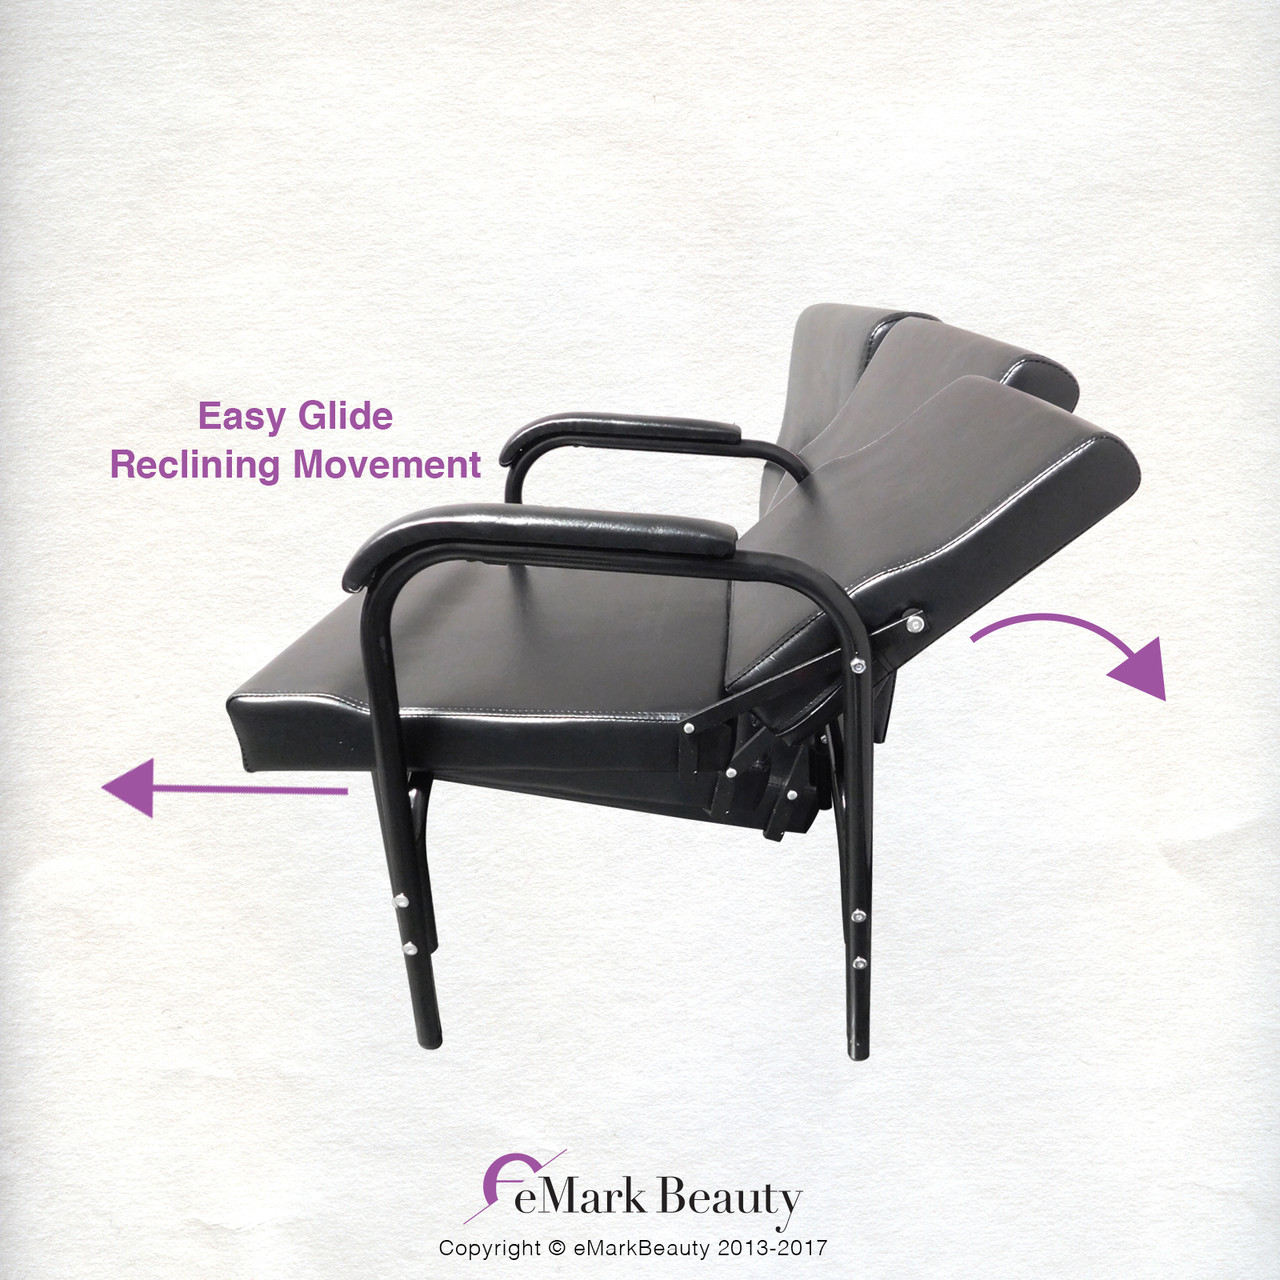 Auto Recline Reclining Barber Hair Styling Salon Spa with Lumbar Support TLC-216